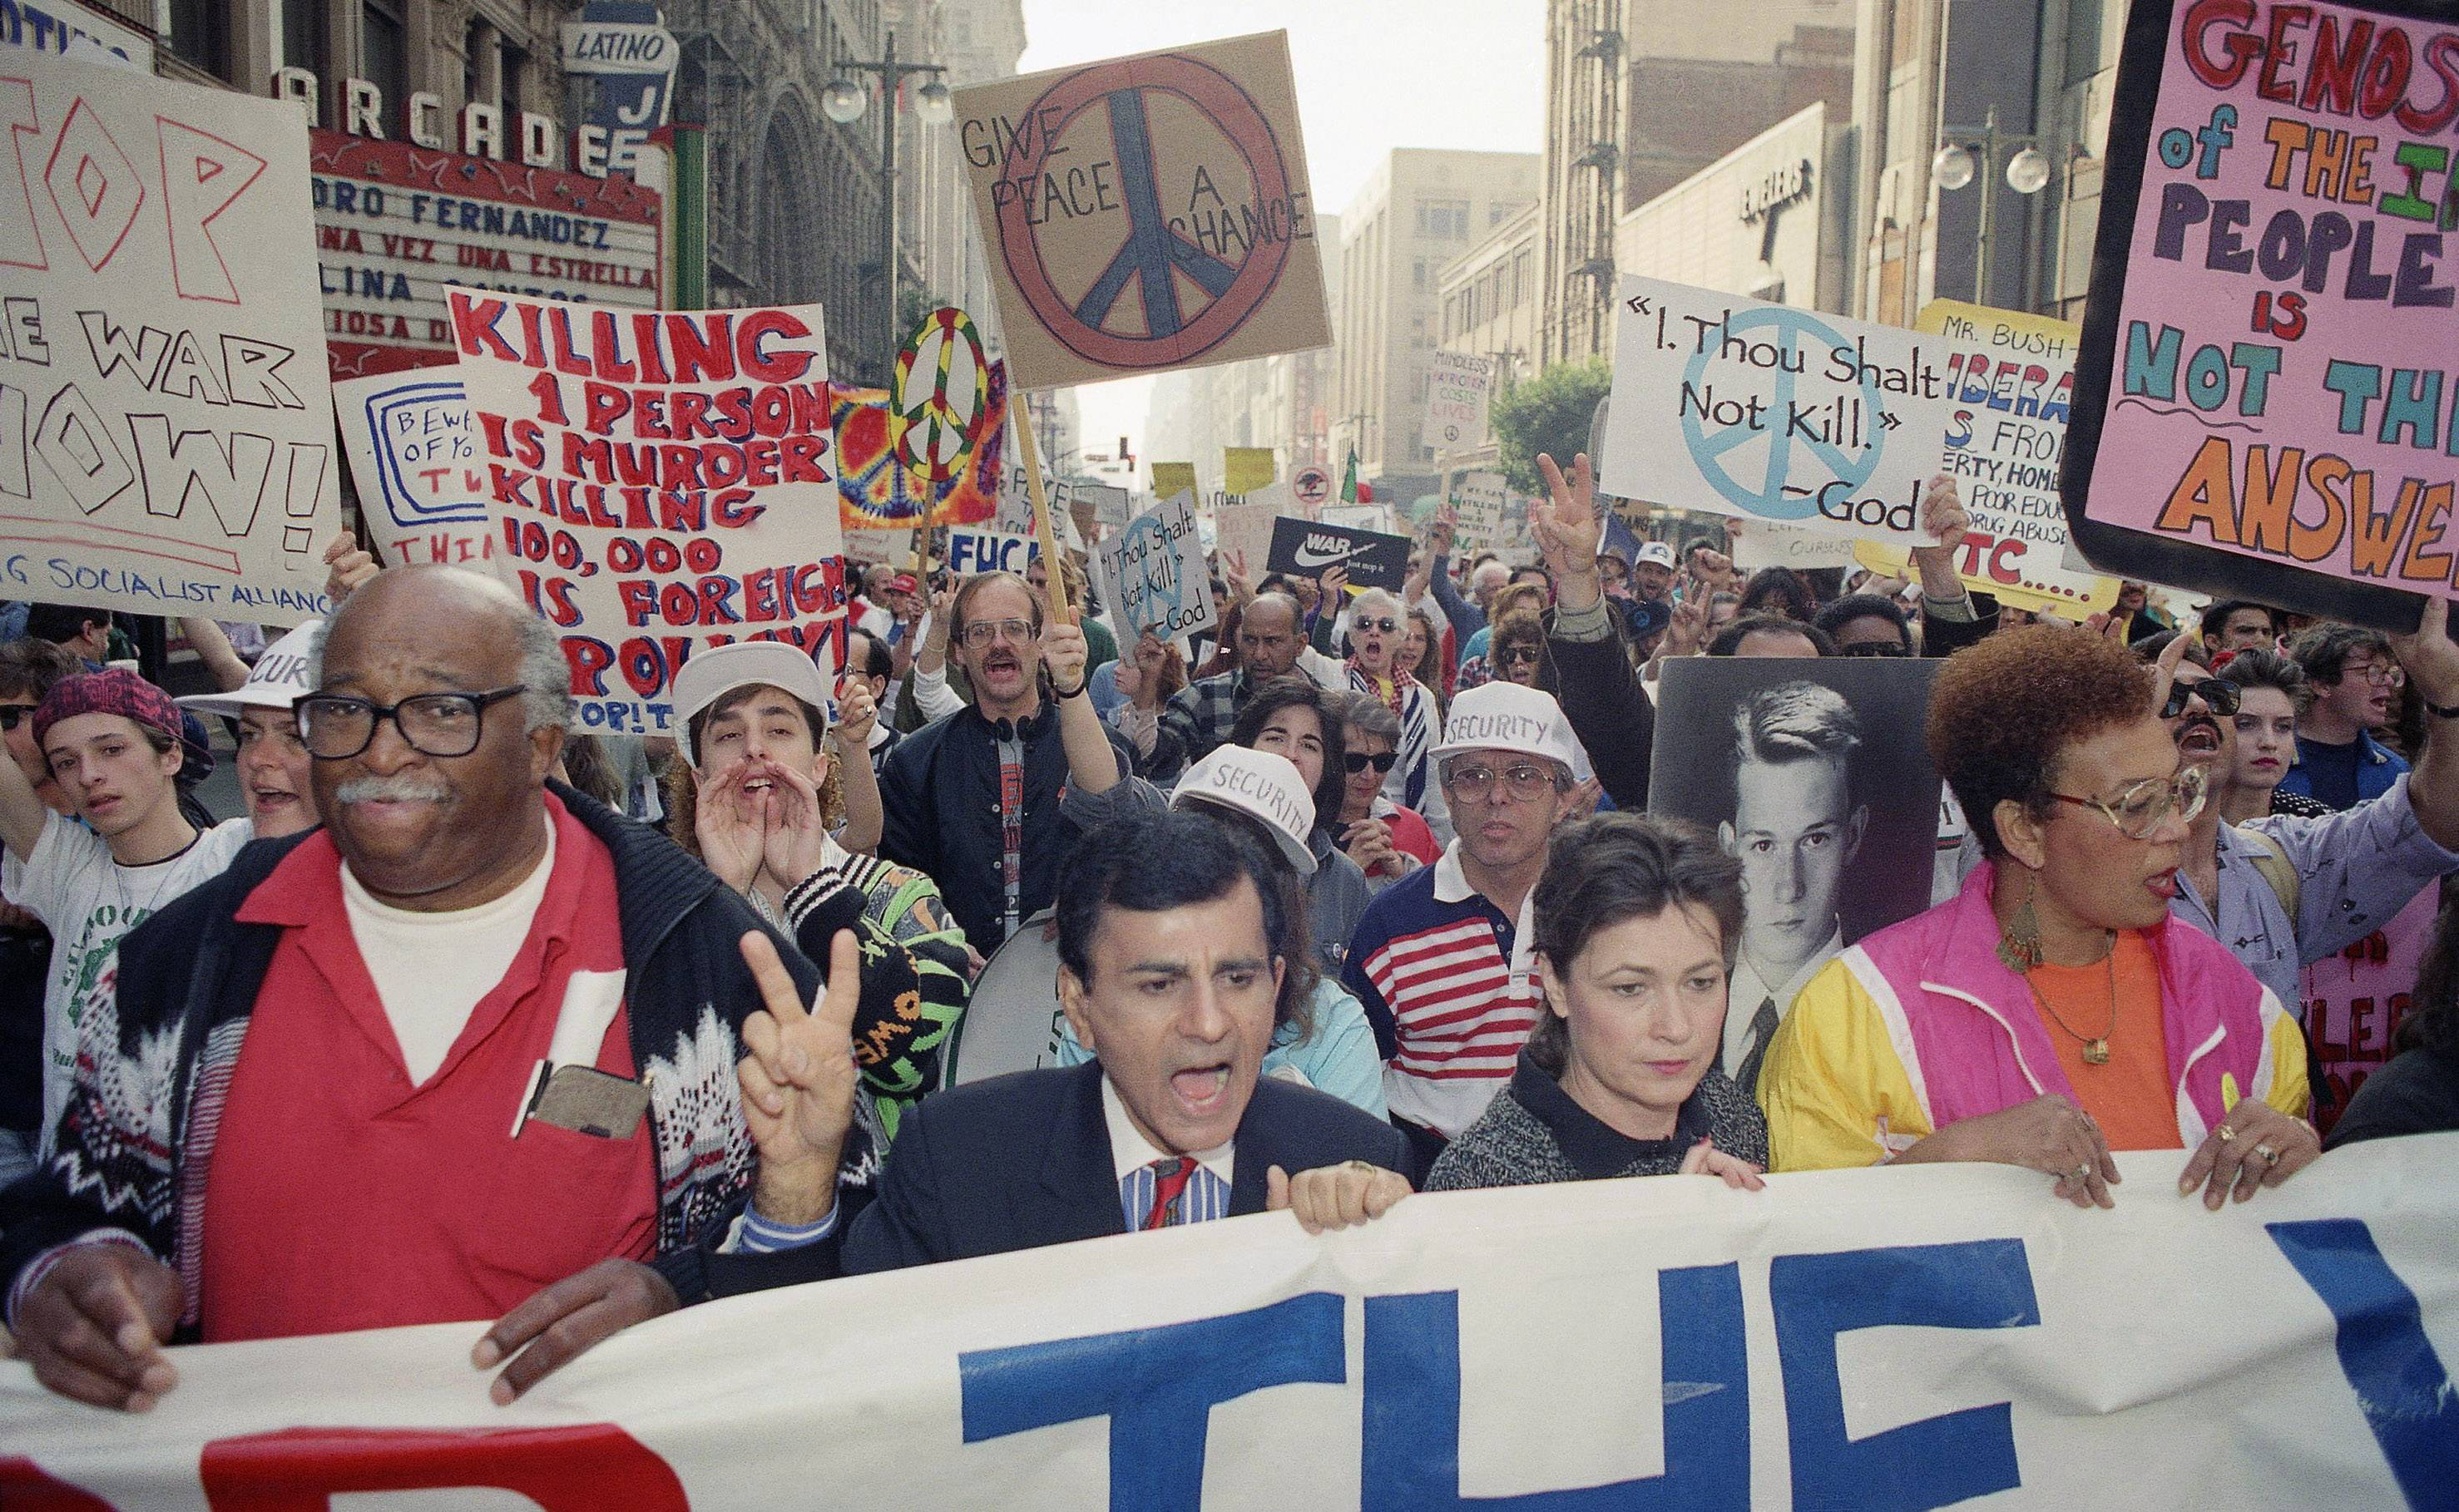 In this Jan. 26, 1991, file photo, entertainer Casey Kasem leads a group estimated at 15,000 people through the streets in Los Angeles protesting the United States' involvement in the Persian Gulf.